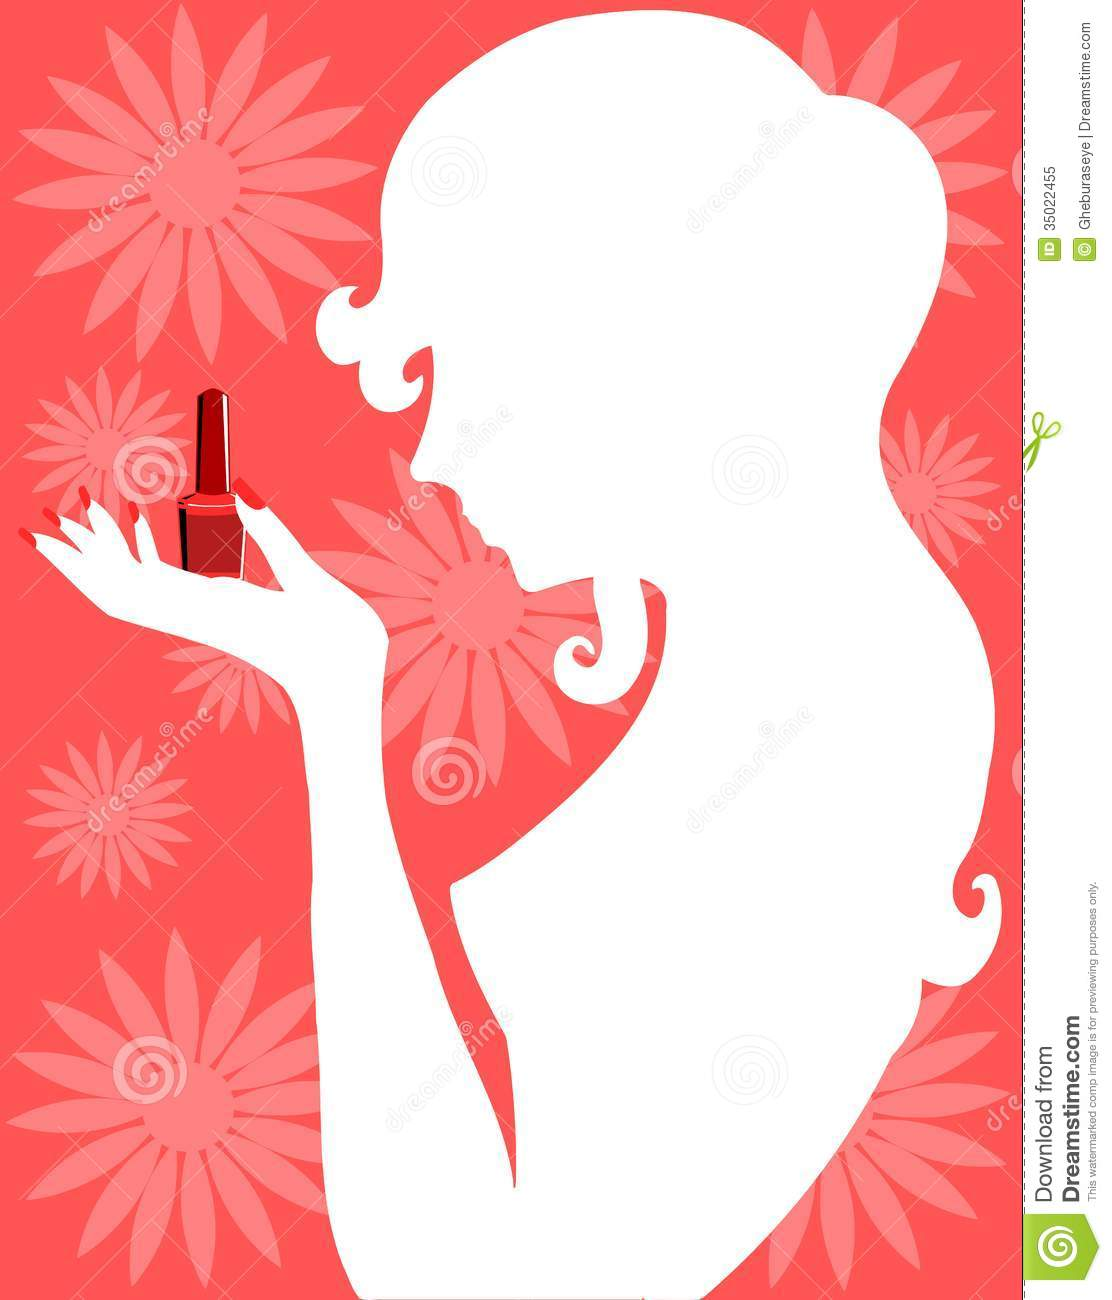 Woman Silhouette With Nail Polish Royalty Free Stock Photo Image 35022455